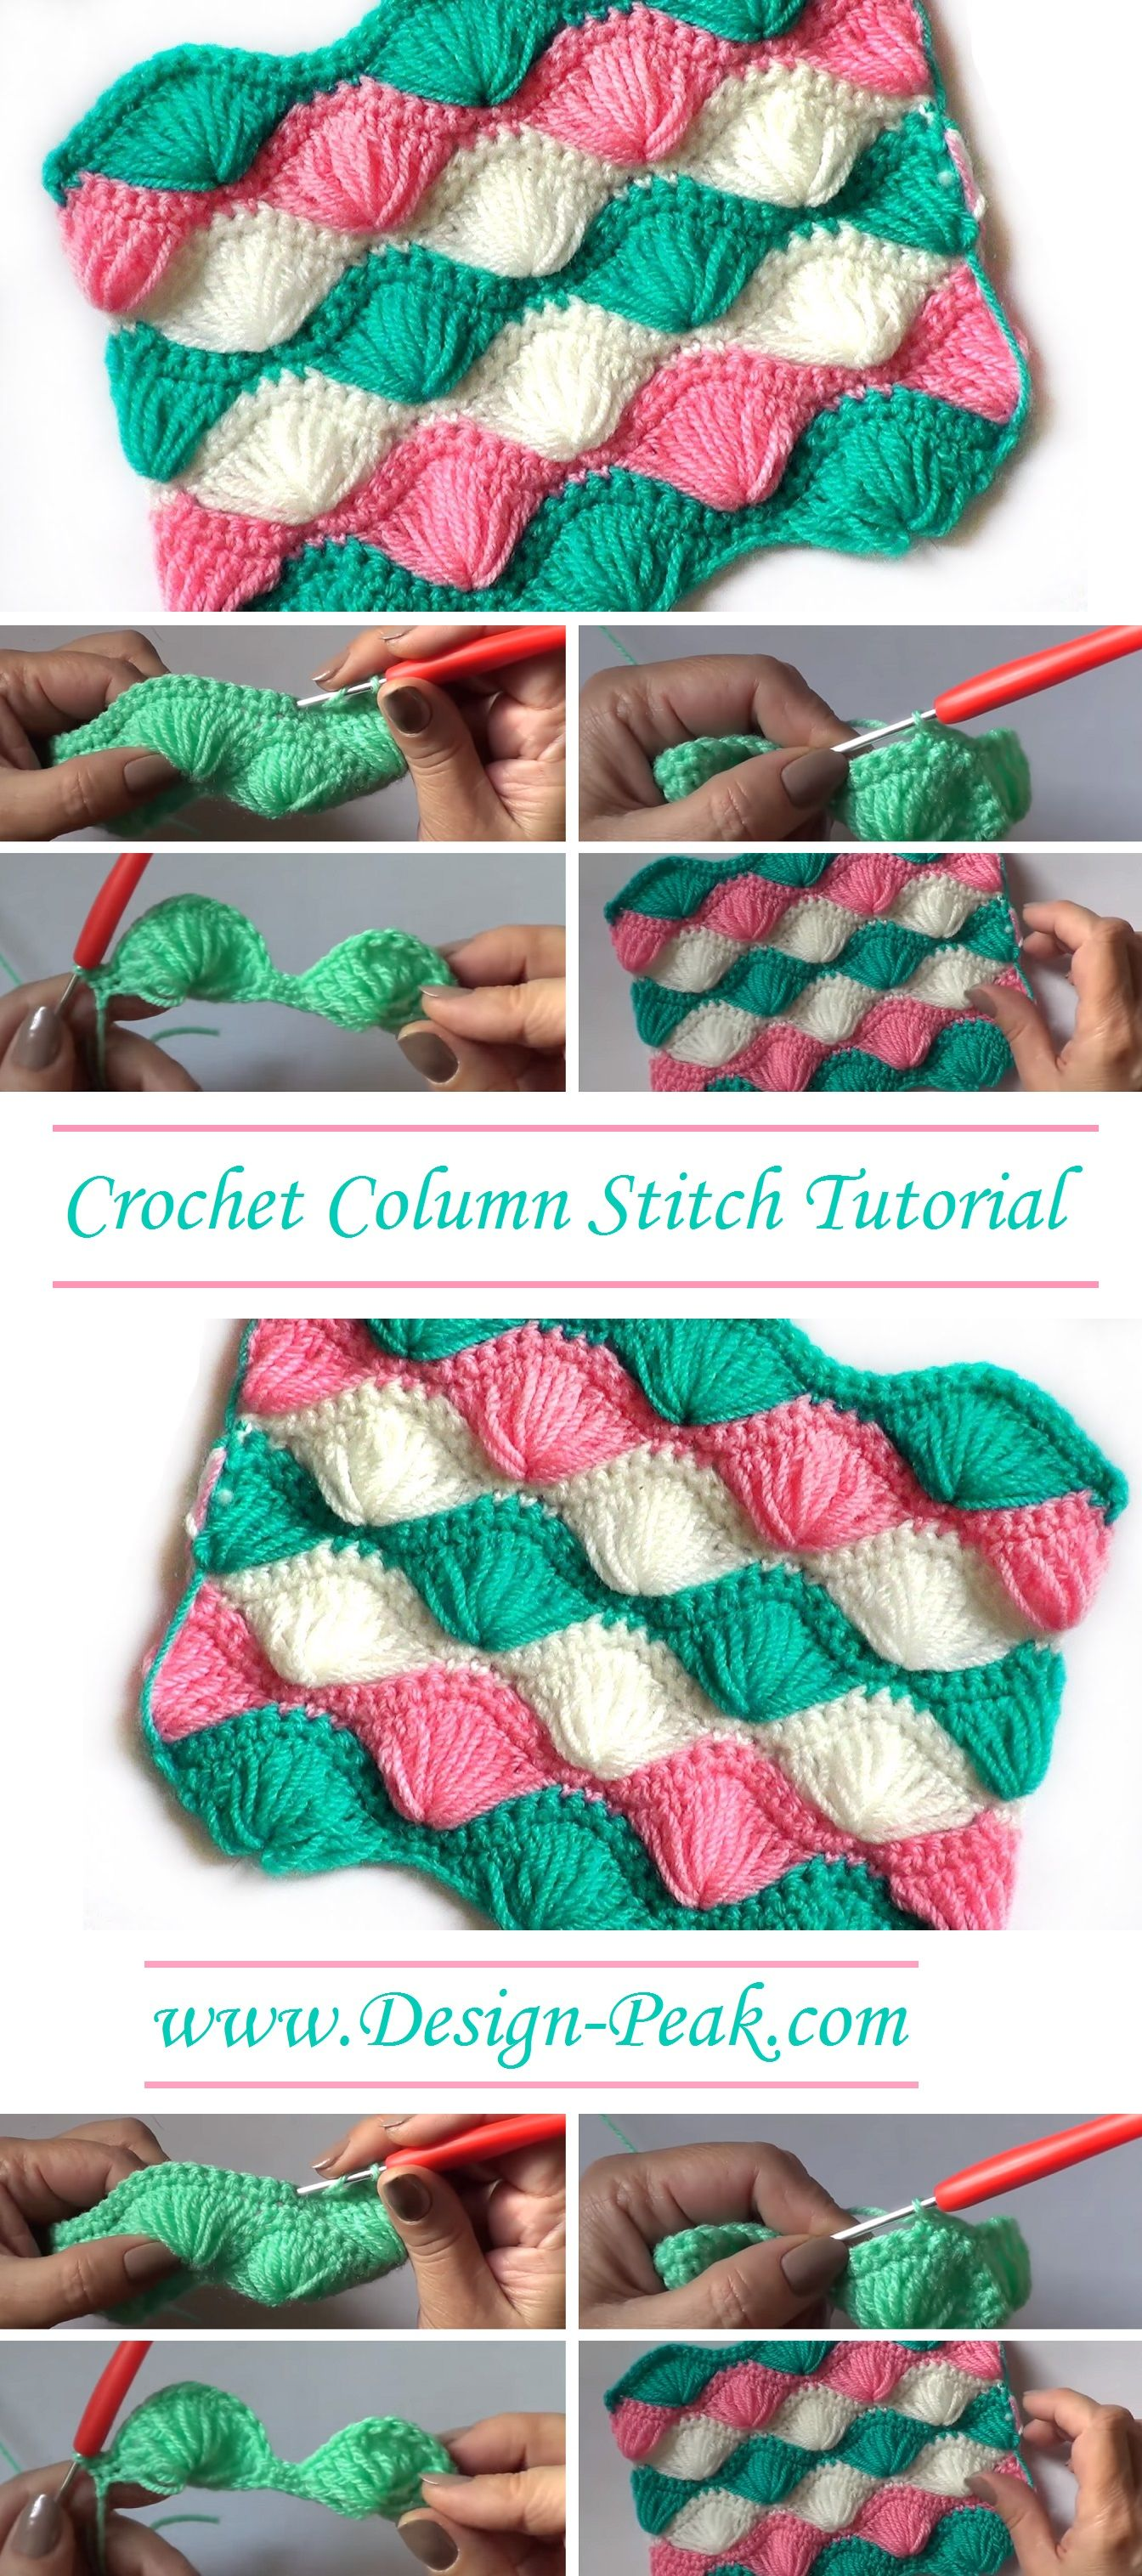 Crochet Column Stitch Tutorial | Crochetmania | Pinterest ...